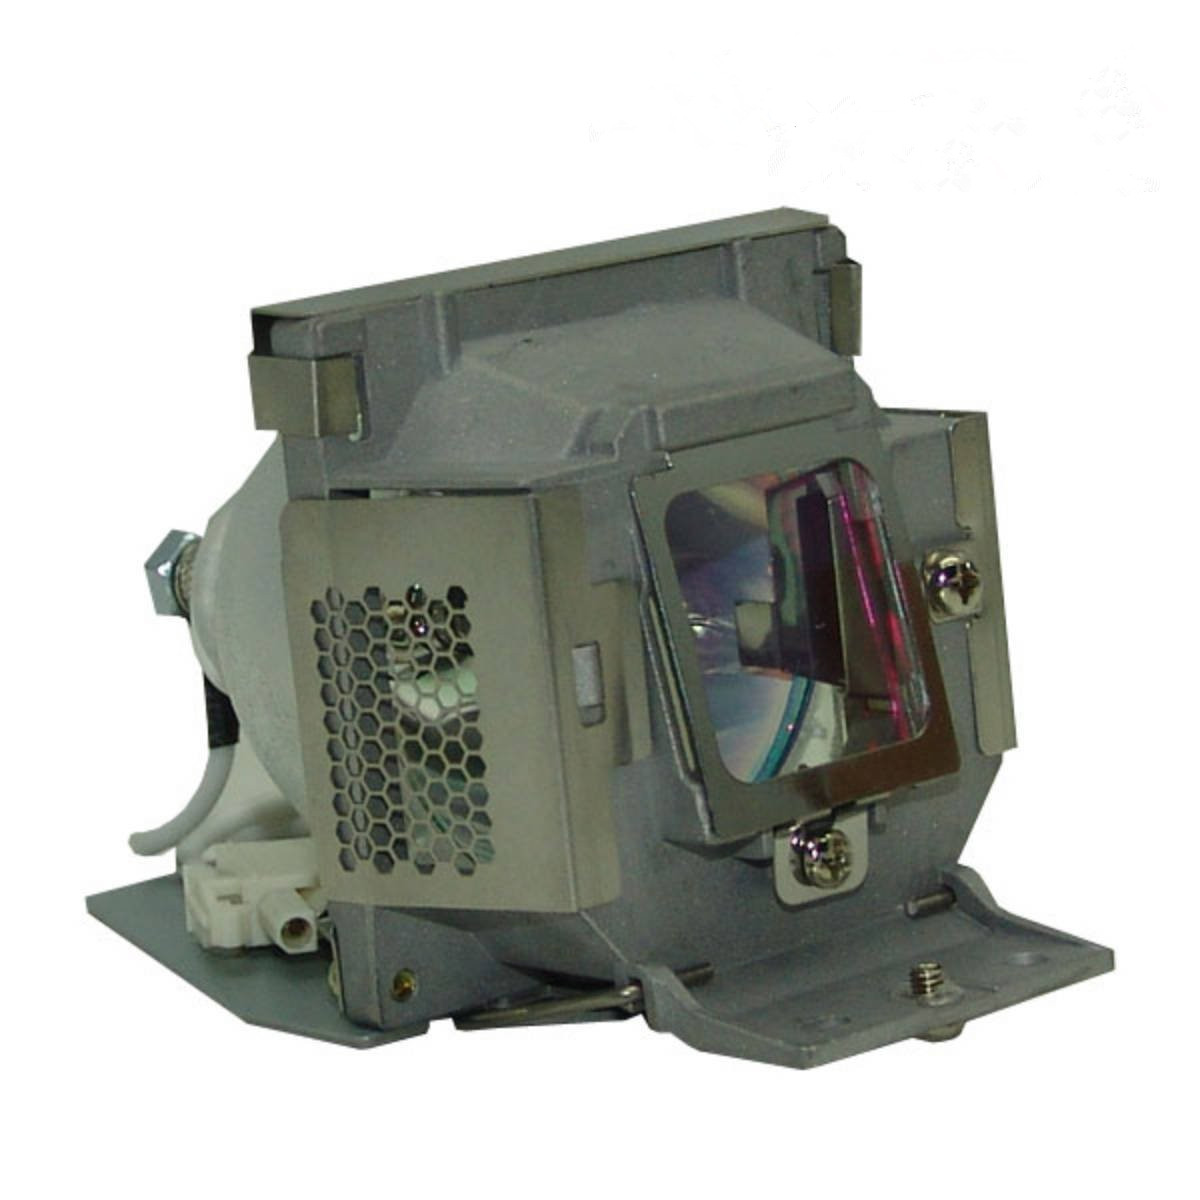 ФОТО 5J.J0A05.001 SHP132 Lamp for BenQ MP515 MP515ST Projector Bulb Lamp with housing